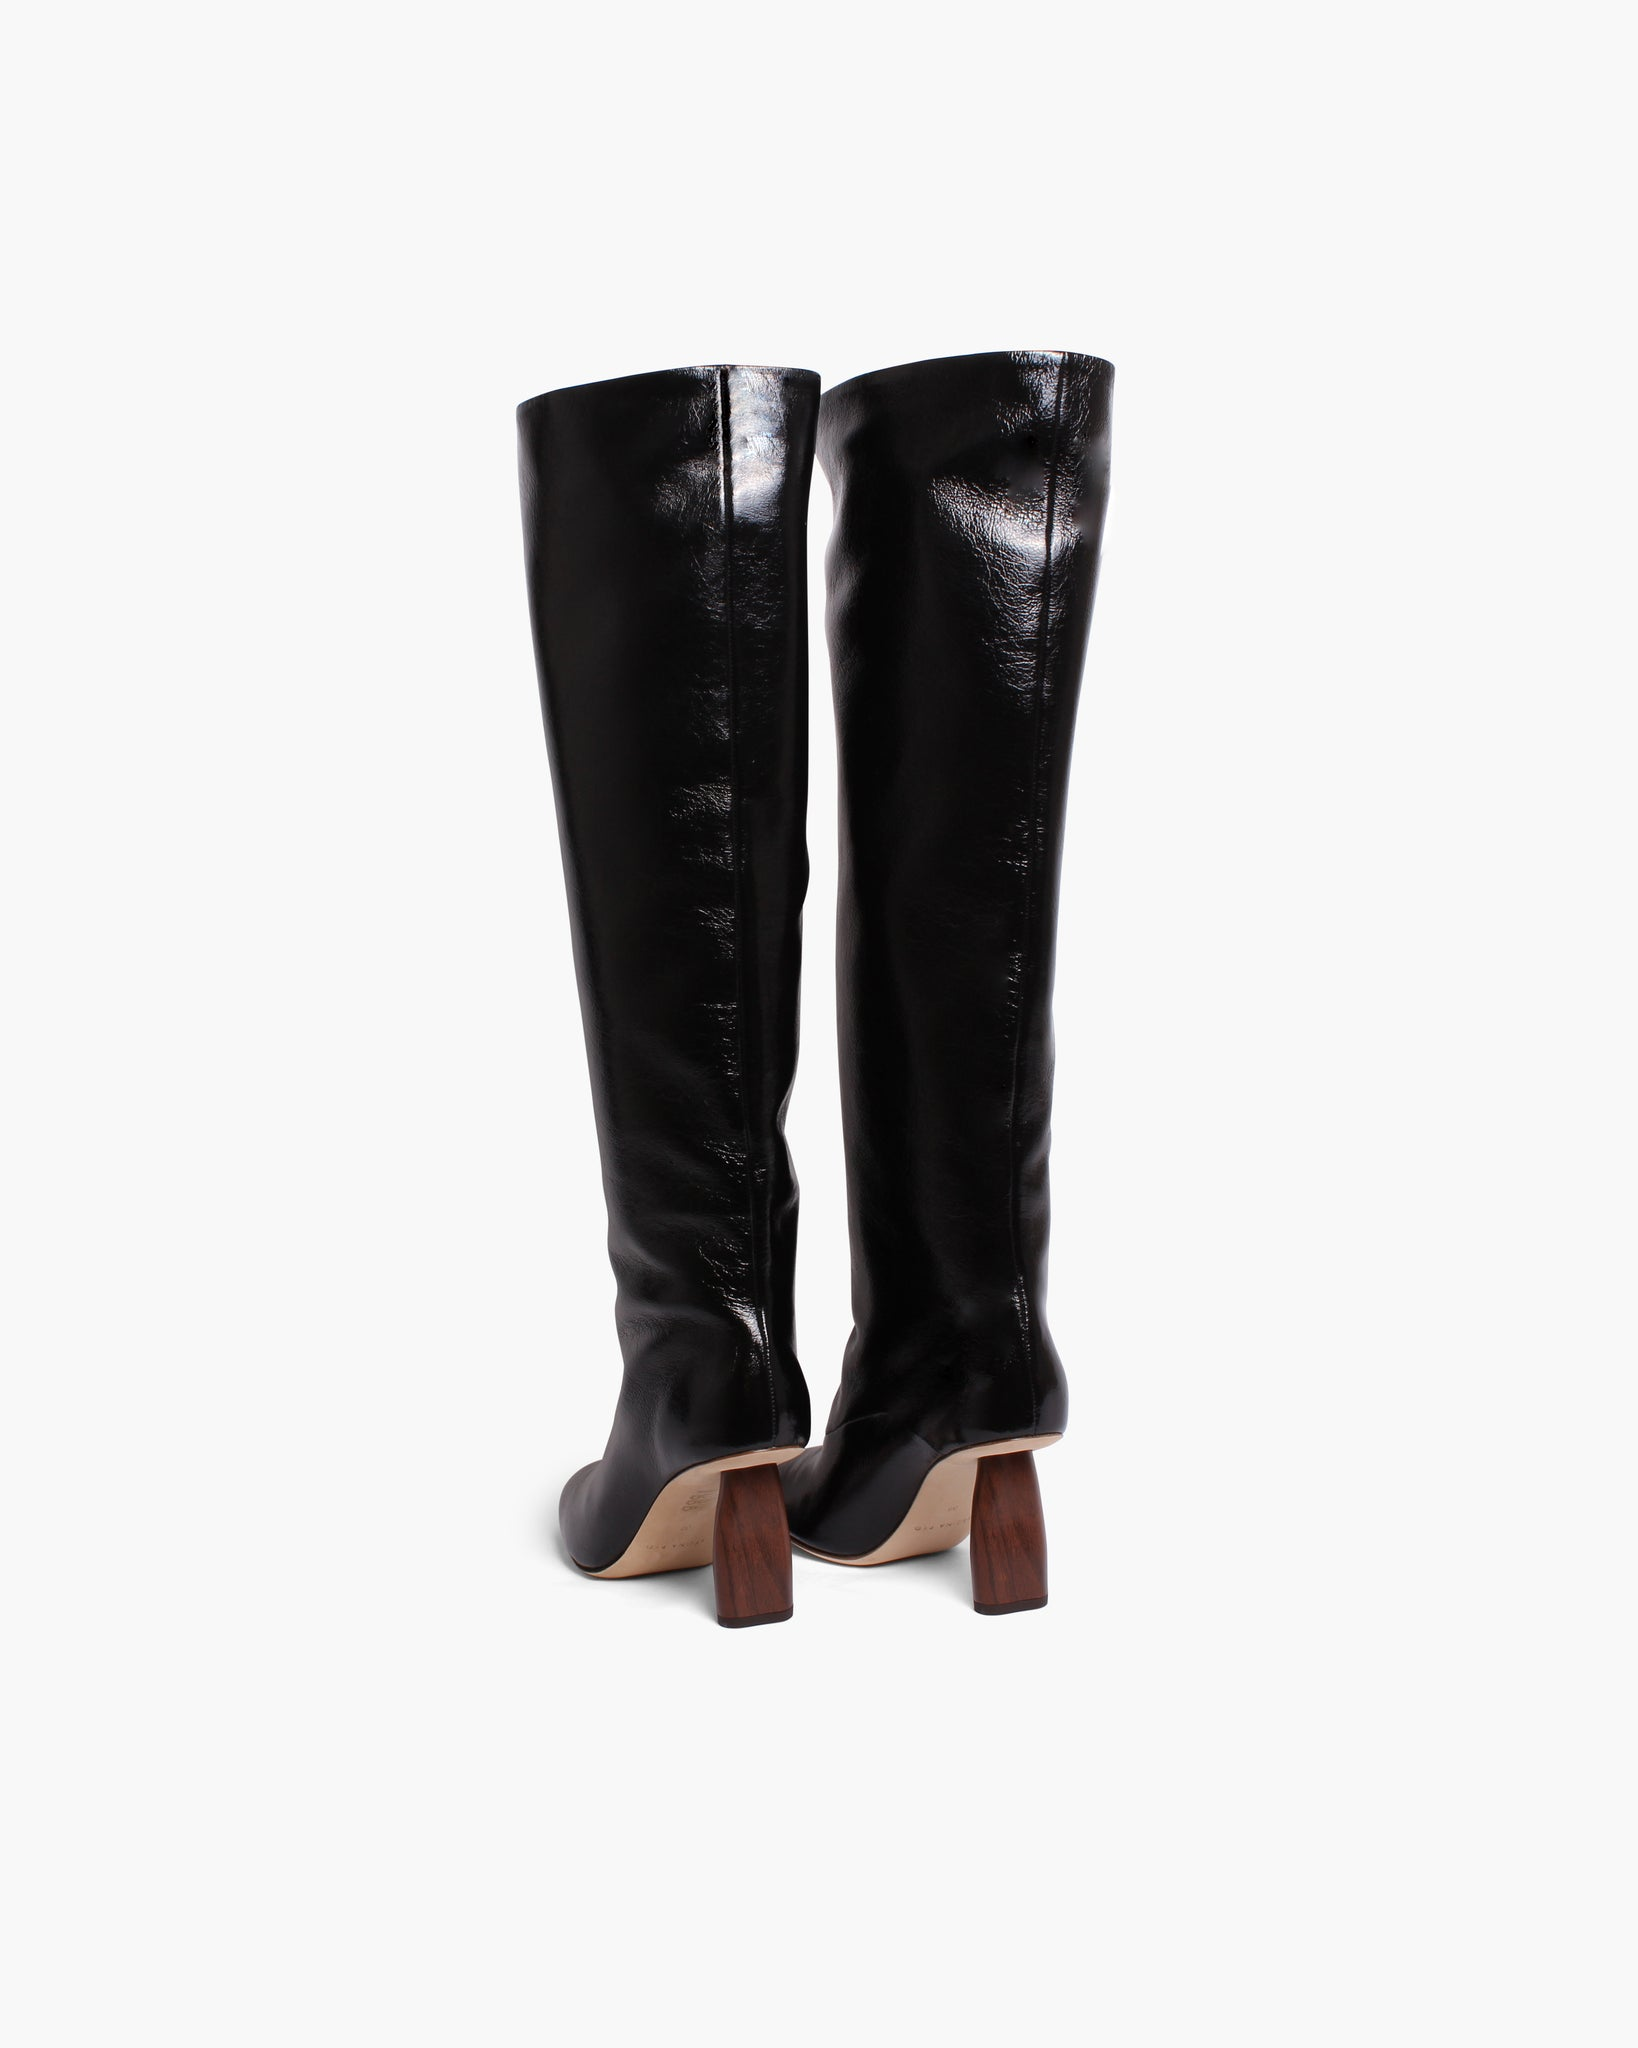 Allegra Boots Leather Black - SPECIAL PRICE